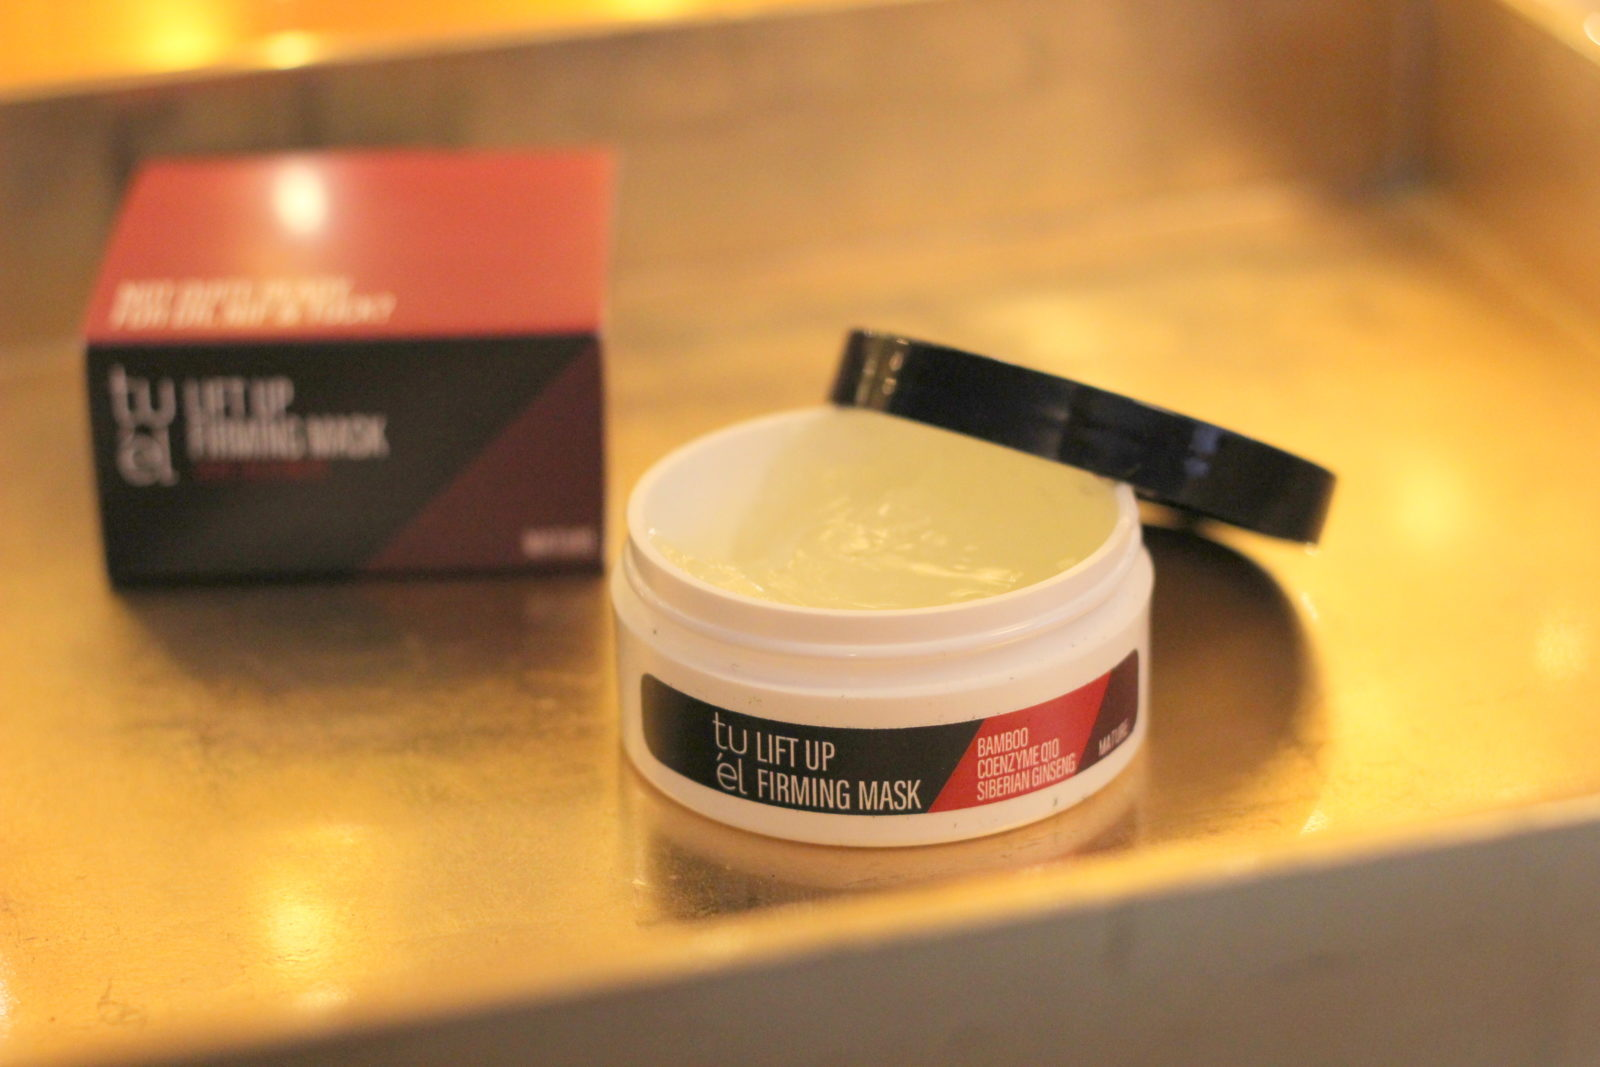 Tuel Lift Up Firming Mask Review